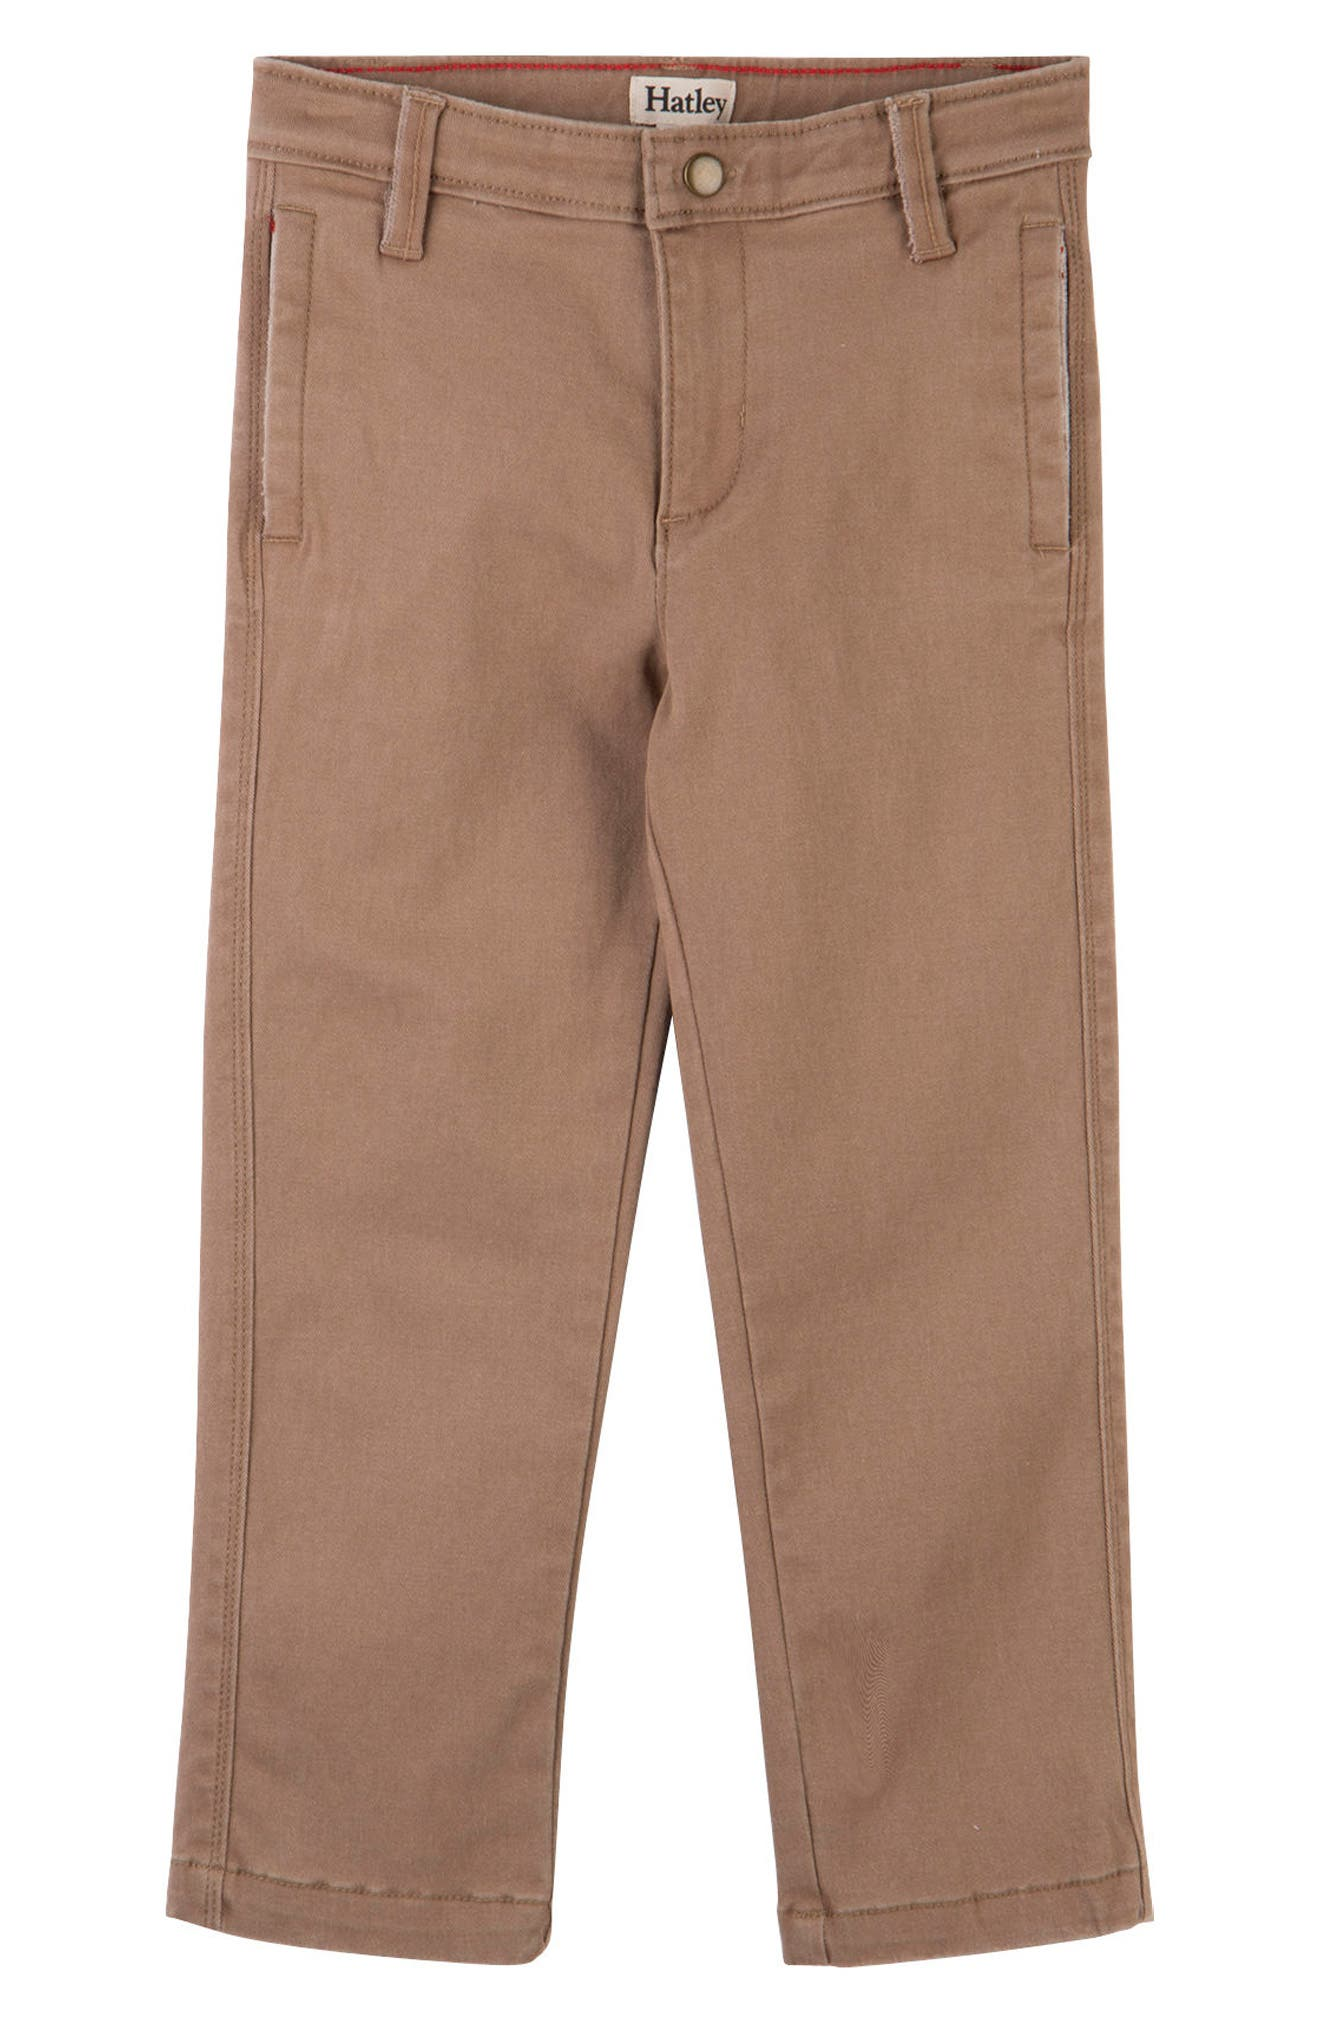 Toddler Boys Hatley Stretch Cotton Twill Pants Size 3  Brown